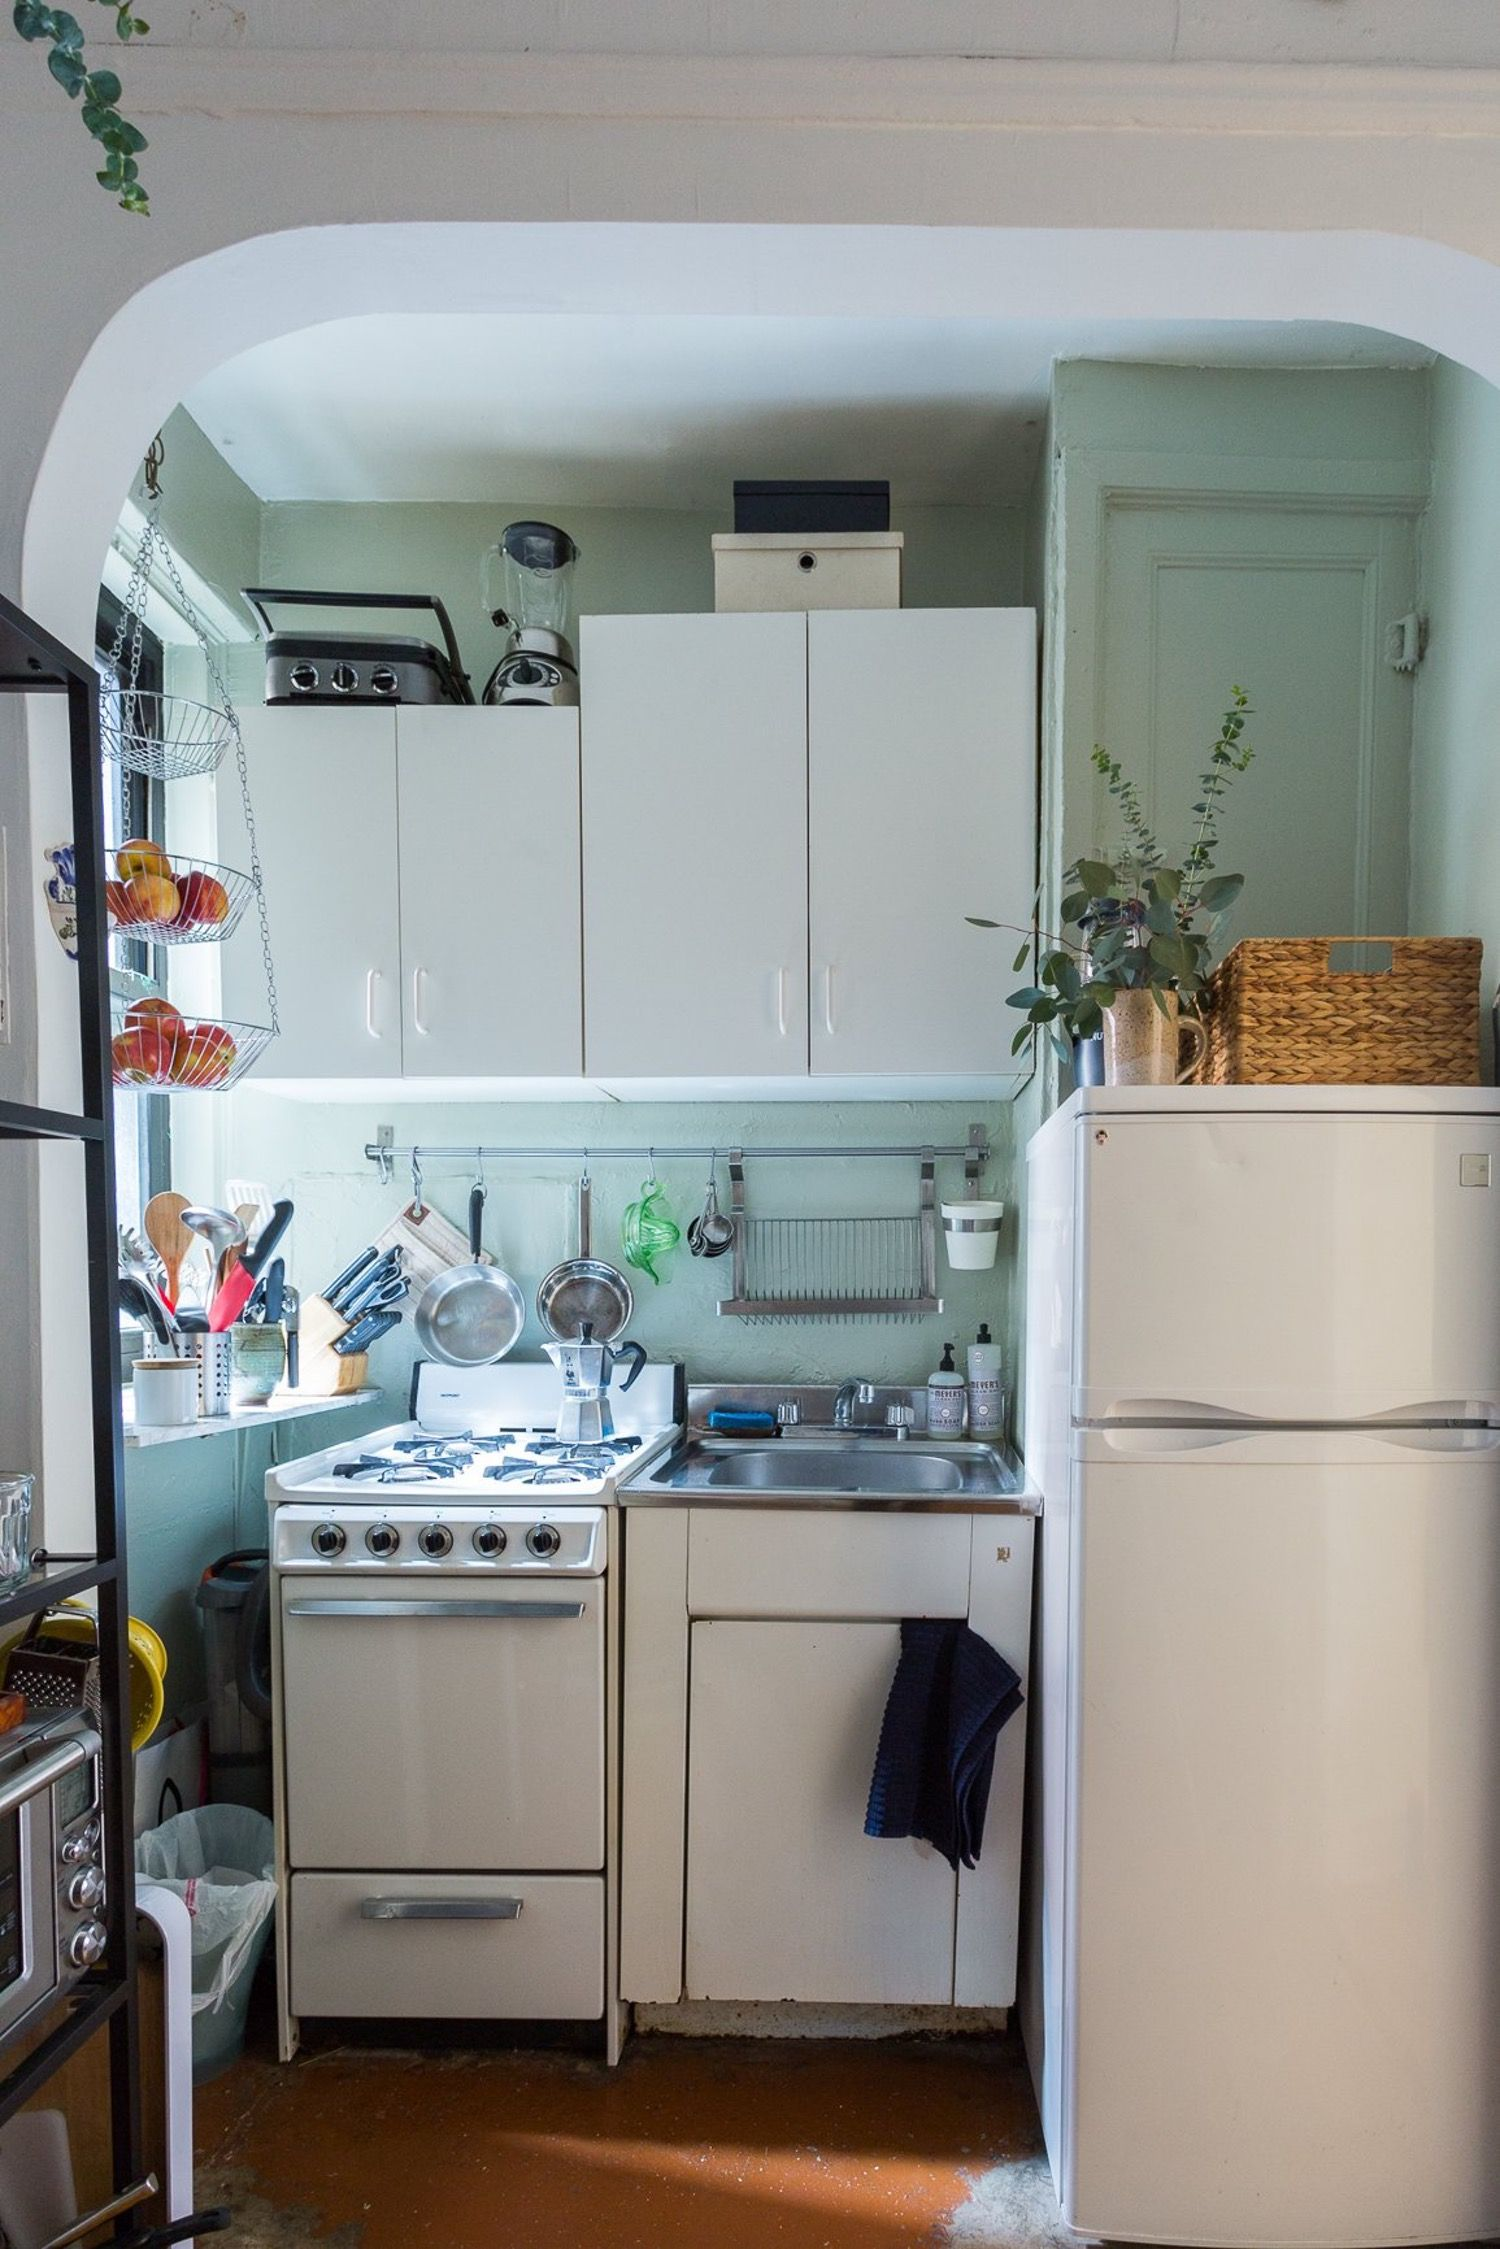 10 Genius Tips for Cooking in a Tiny Kitchen | Kitchens